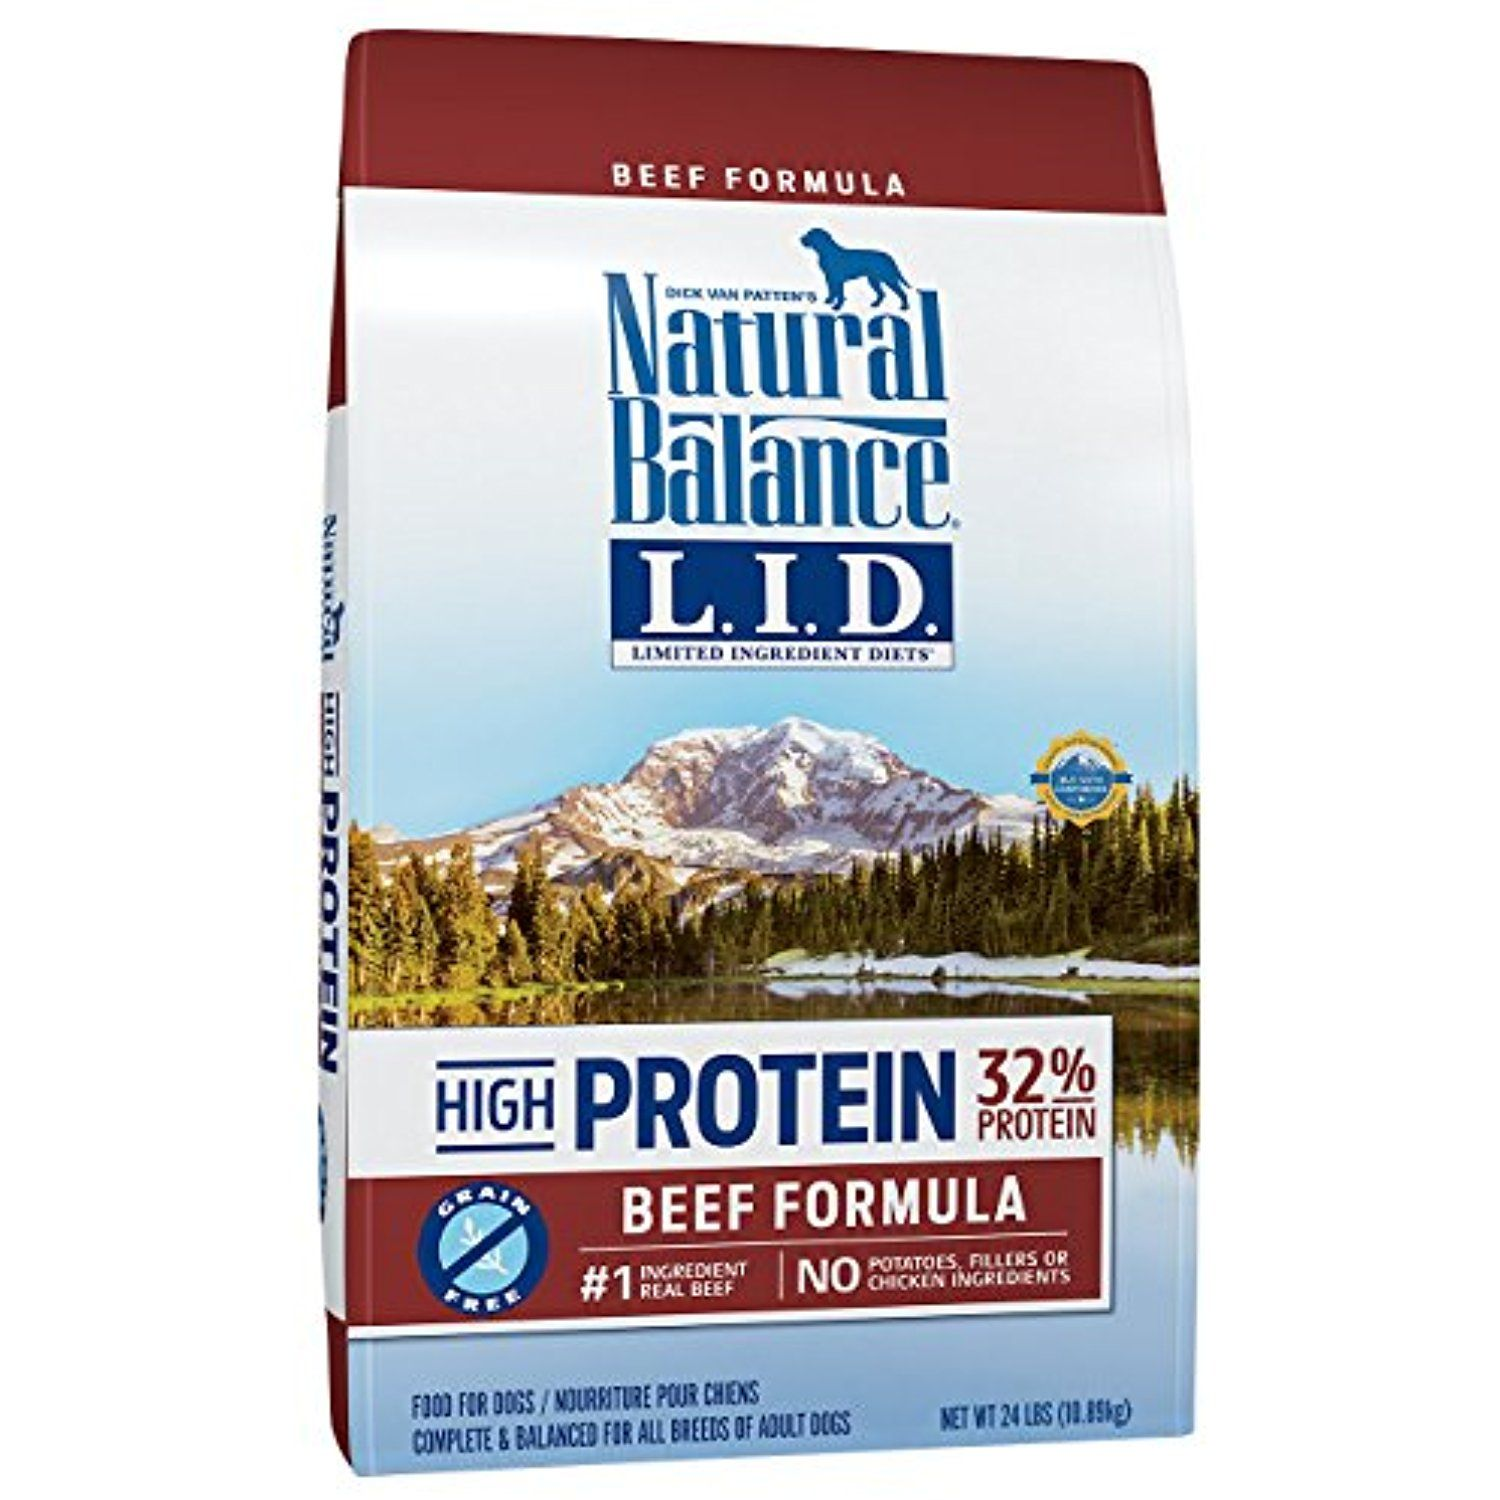 Natural balance limited ingredient diets high protein dry